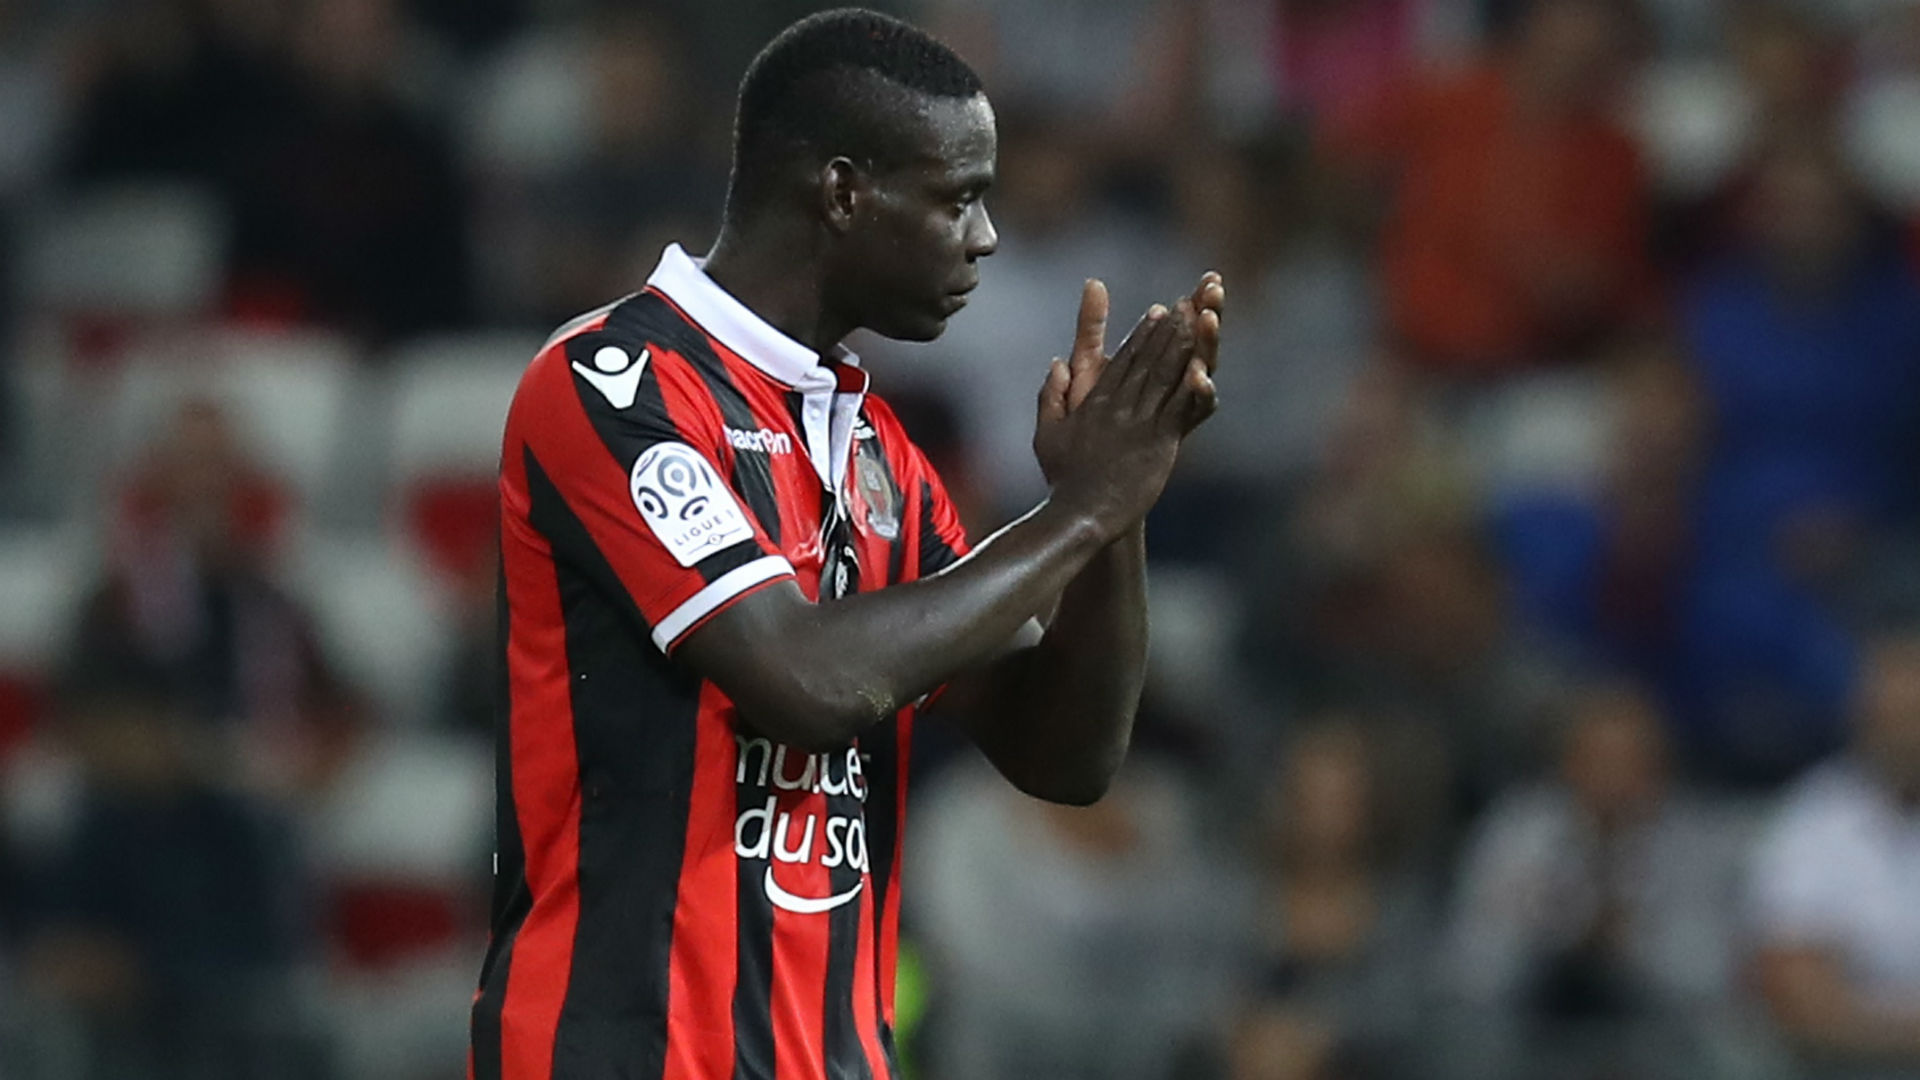 With Mario Balotelli rested, Nice wins anyway to stay top